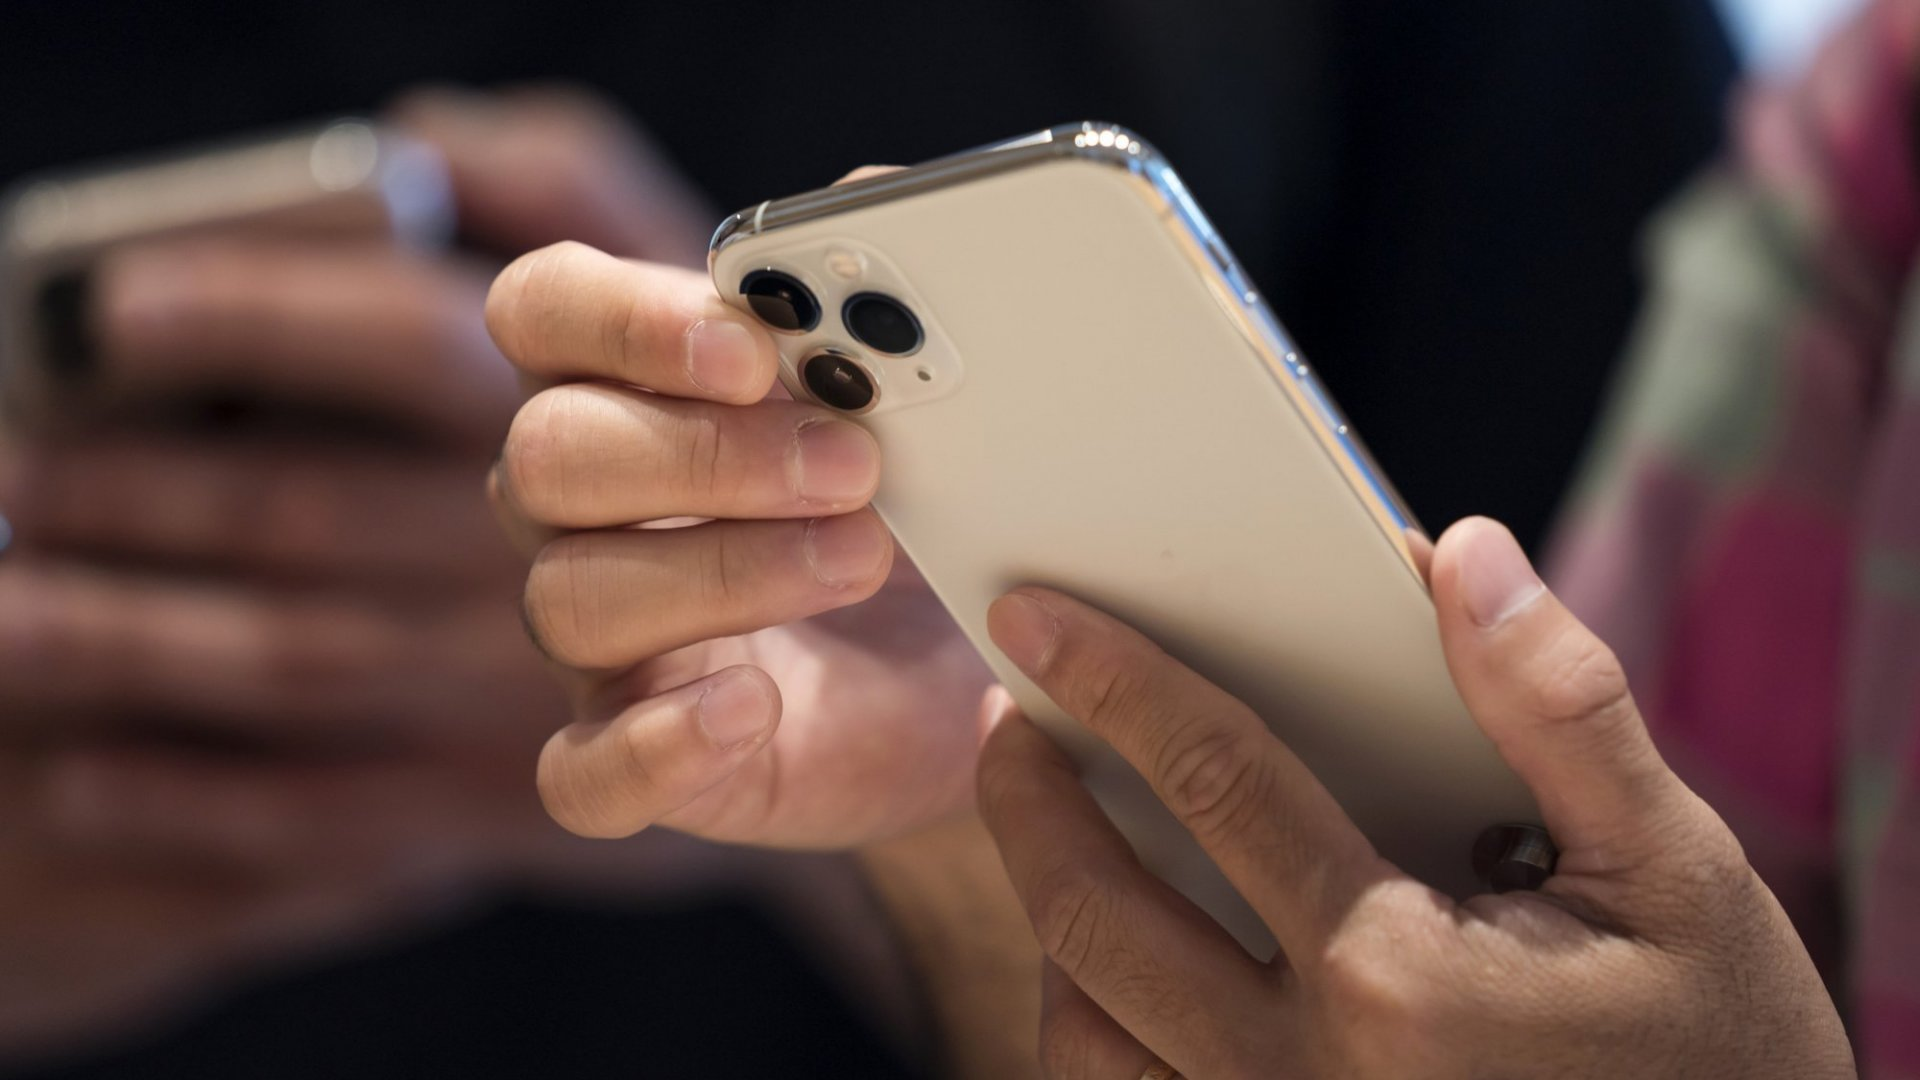 Please Read This Before You Buy an Apple iPhone 11 Pro